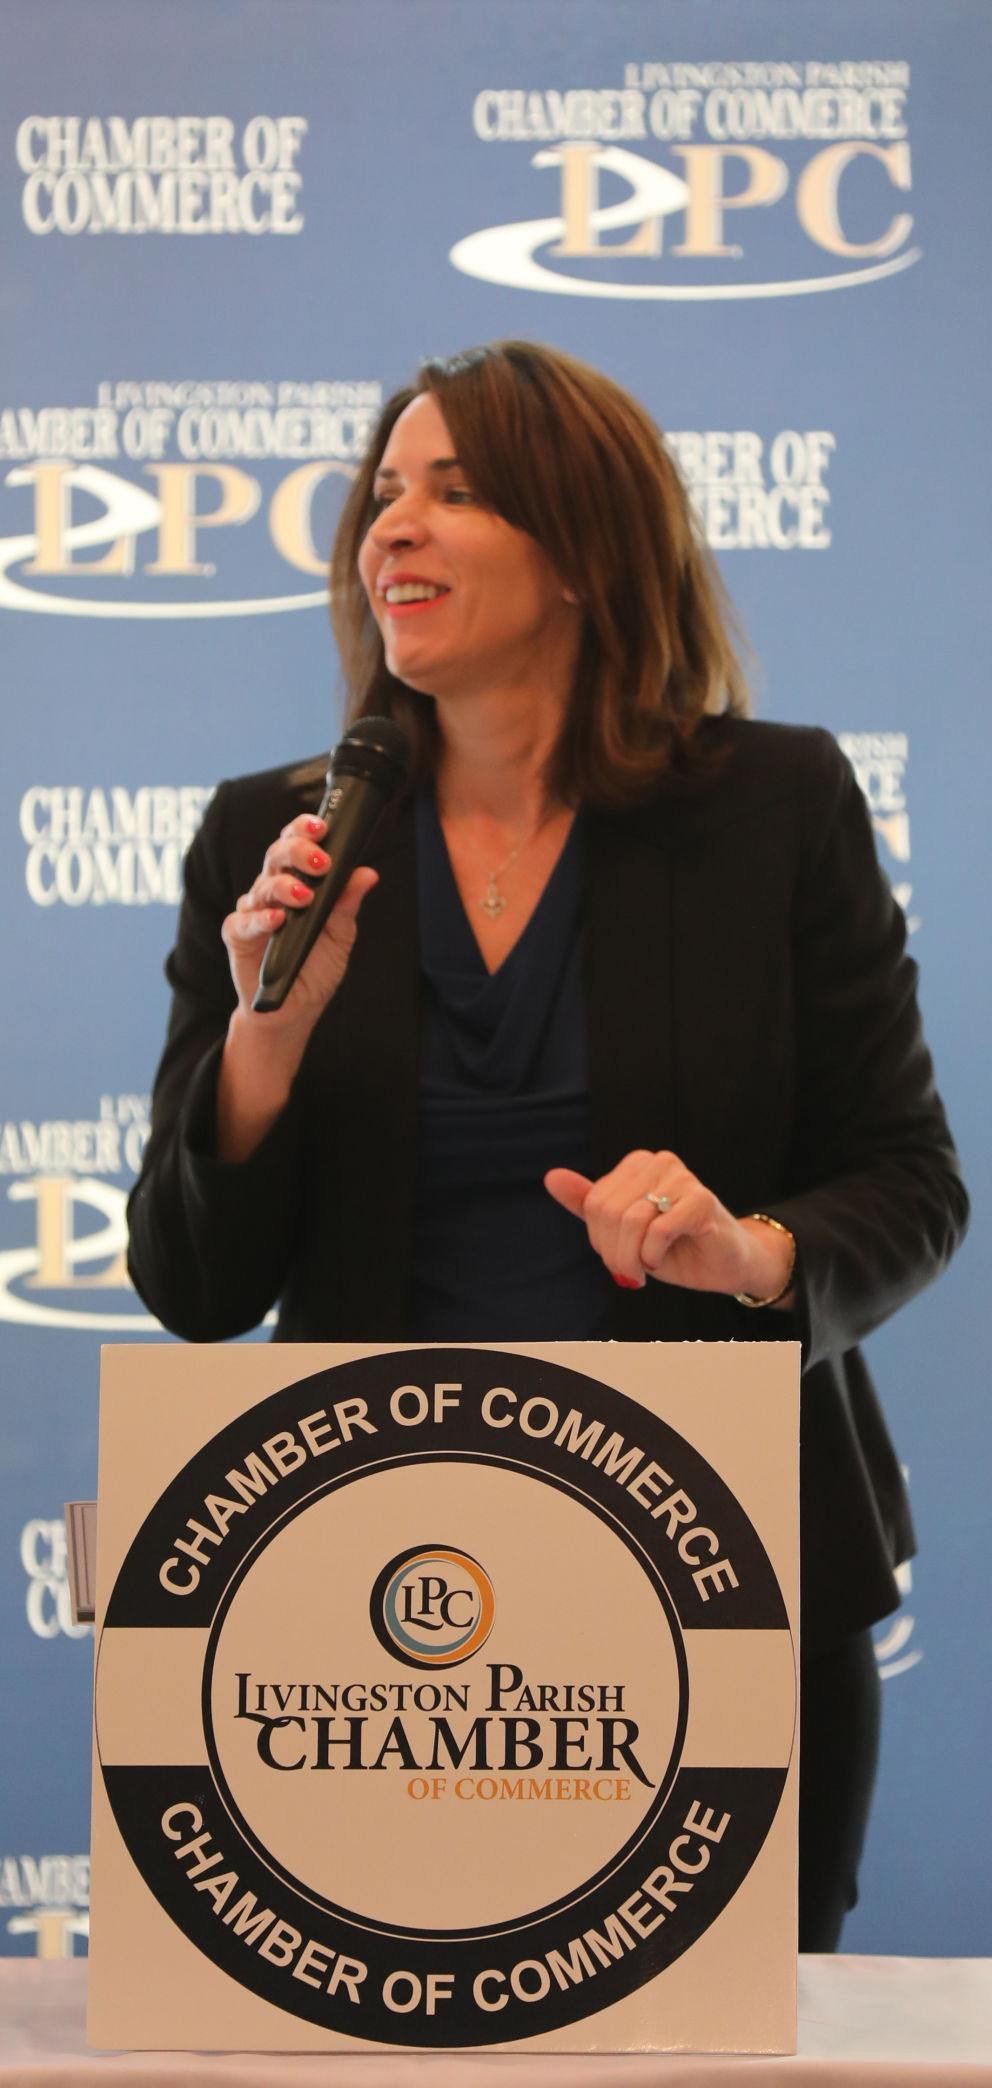 Chamber of Commerce education luncheon